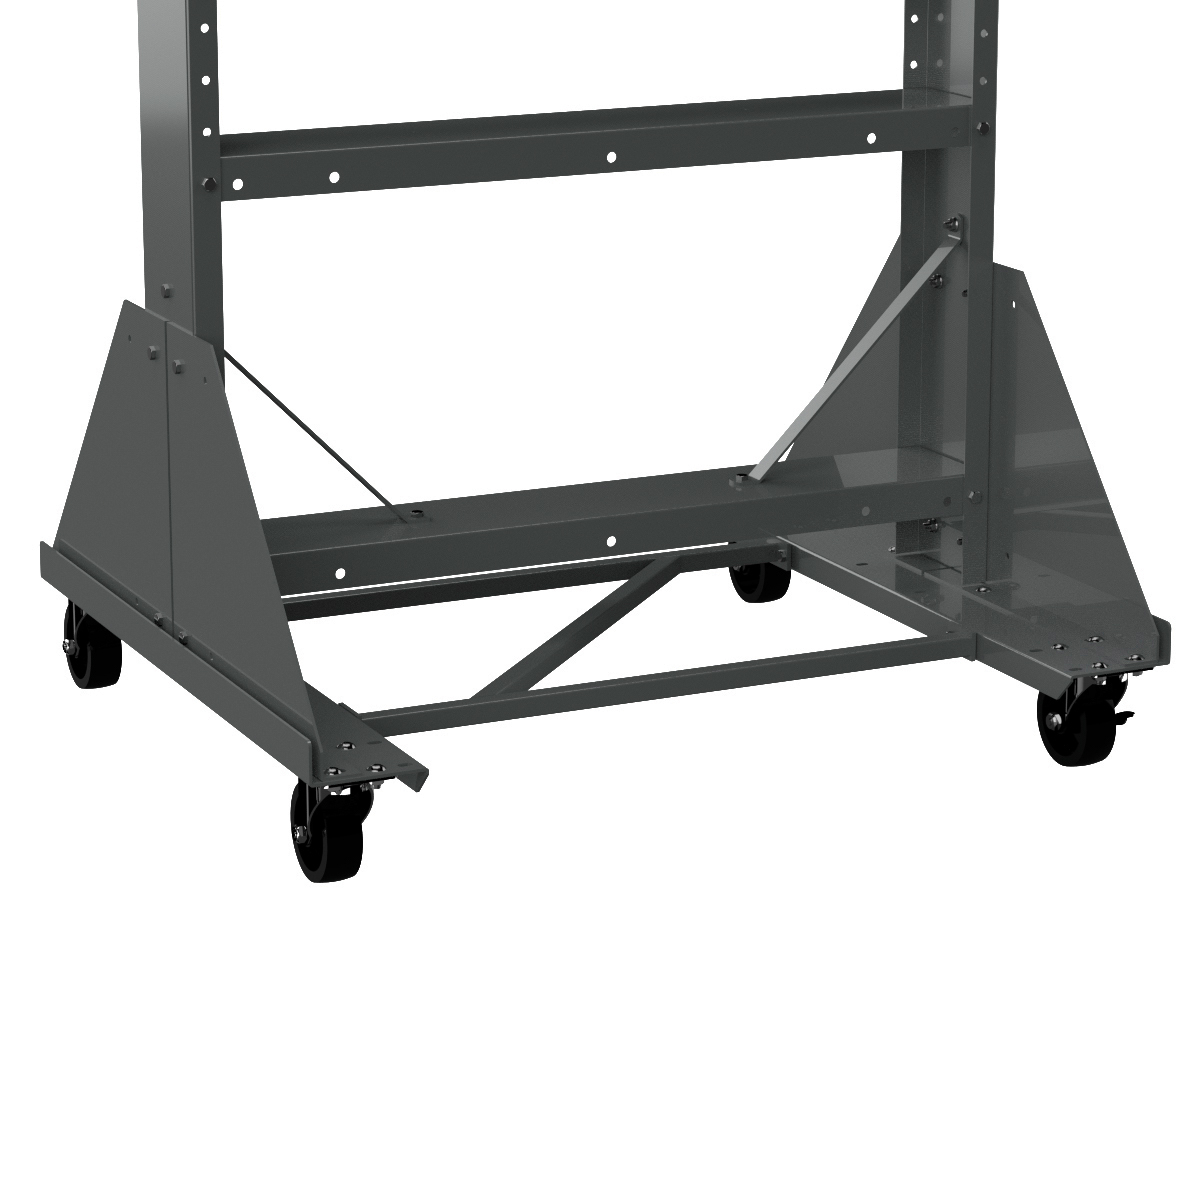 Dolly for Easy Flow Gravity Hopper Rack 31625RACK, Gray (30600DOLLY).  This item sold in carton quantities of 1.